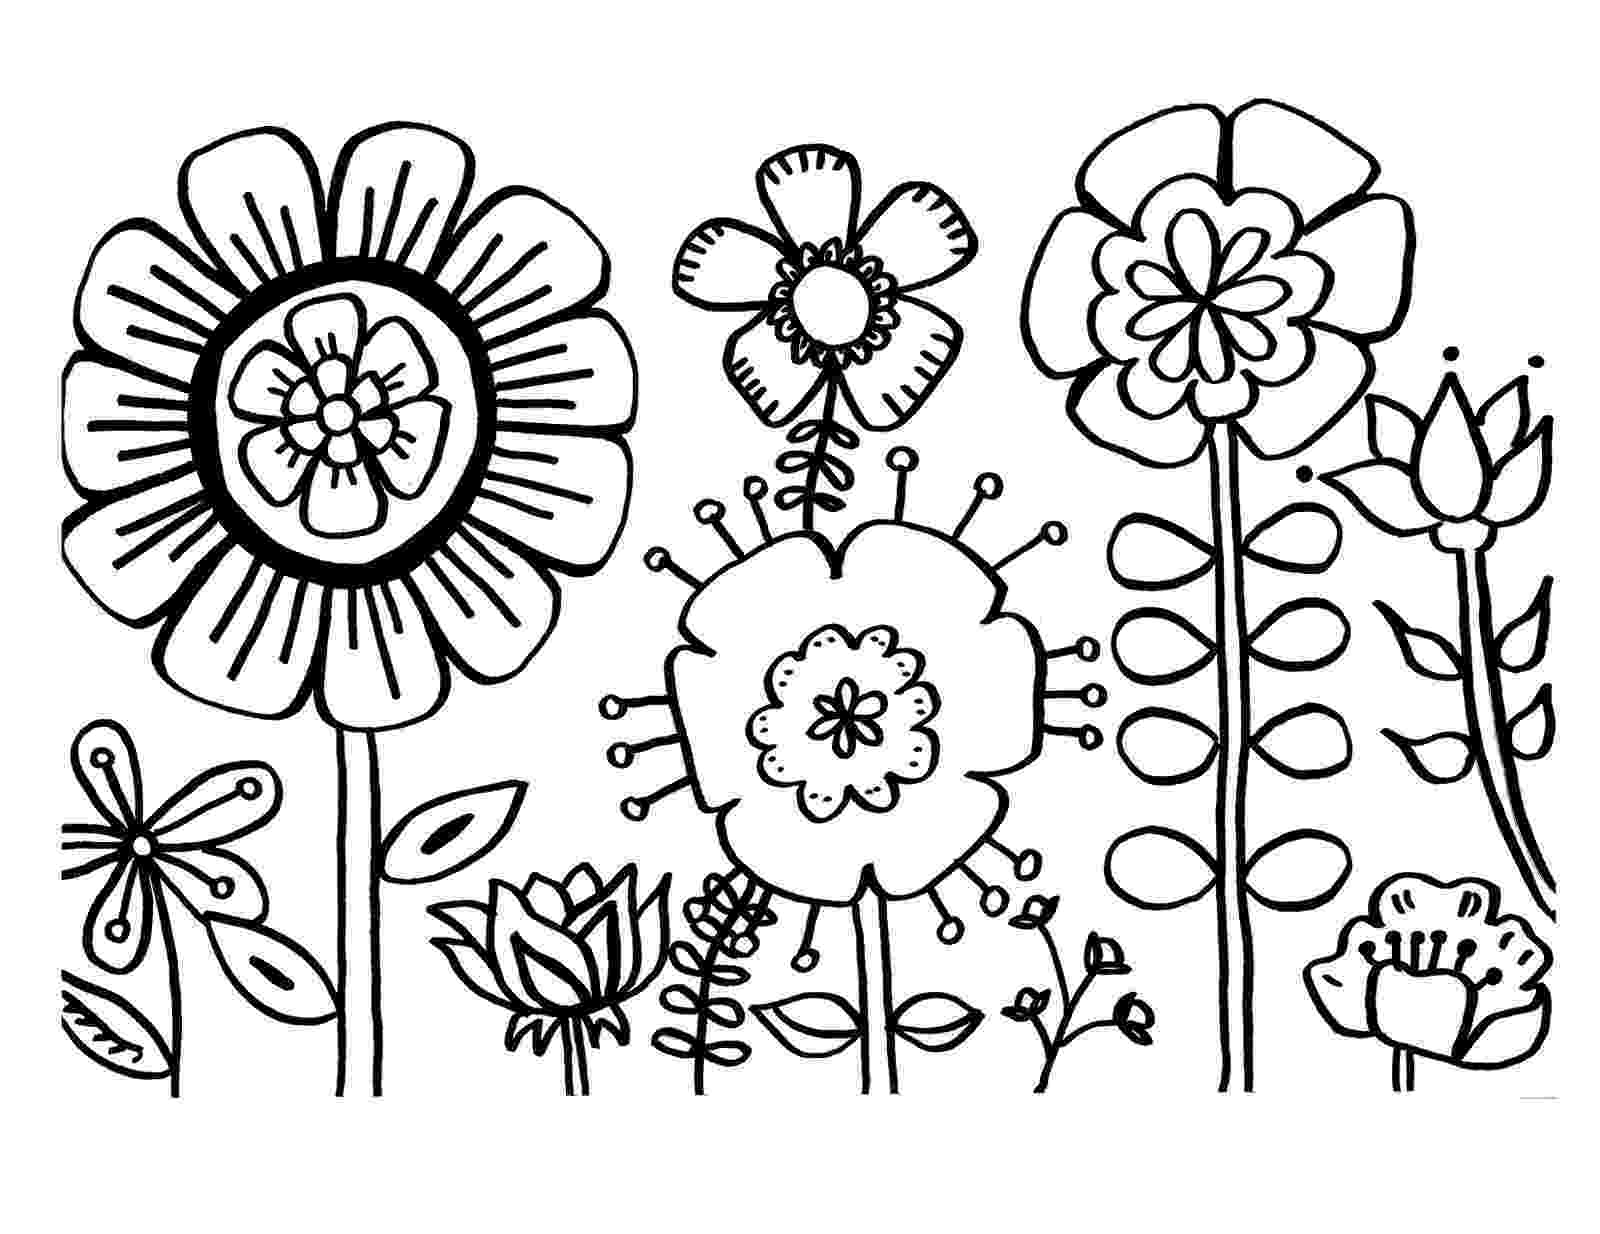 flower coloring sheets for kids free printable flower coloring pages for kids best kids flower coloring sheets for